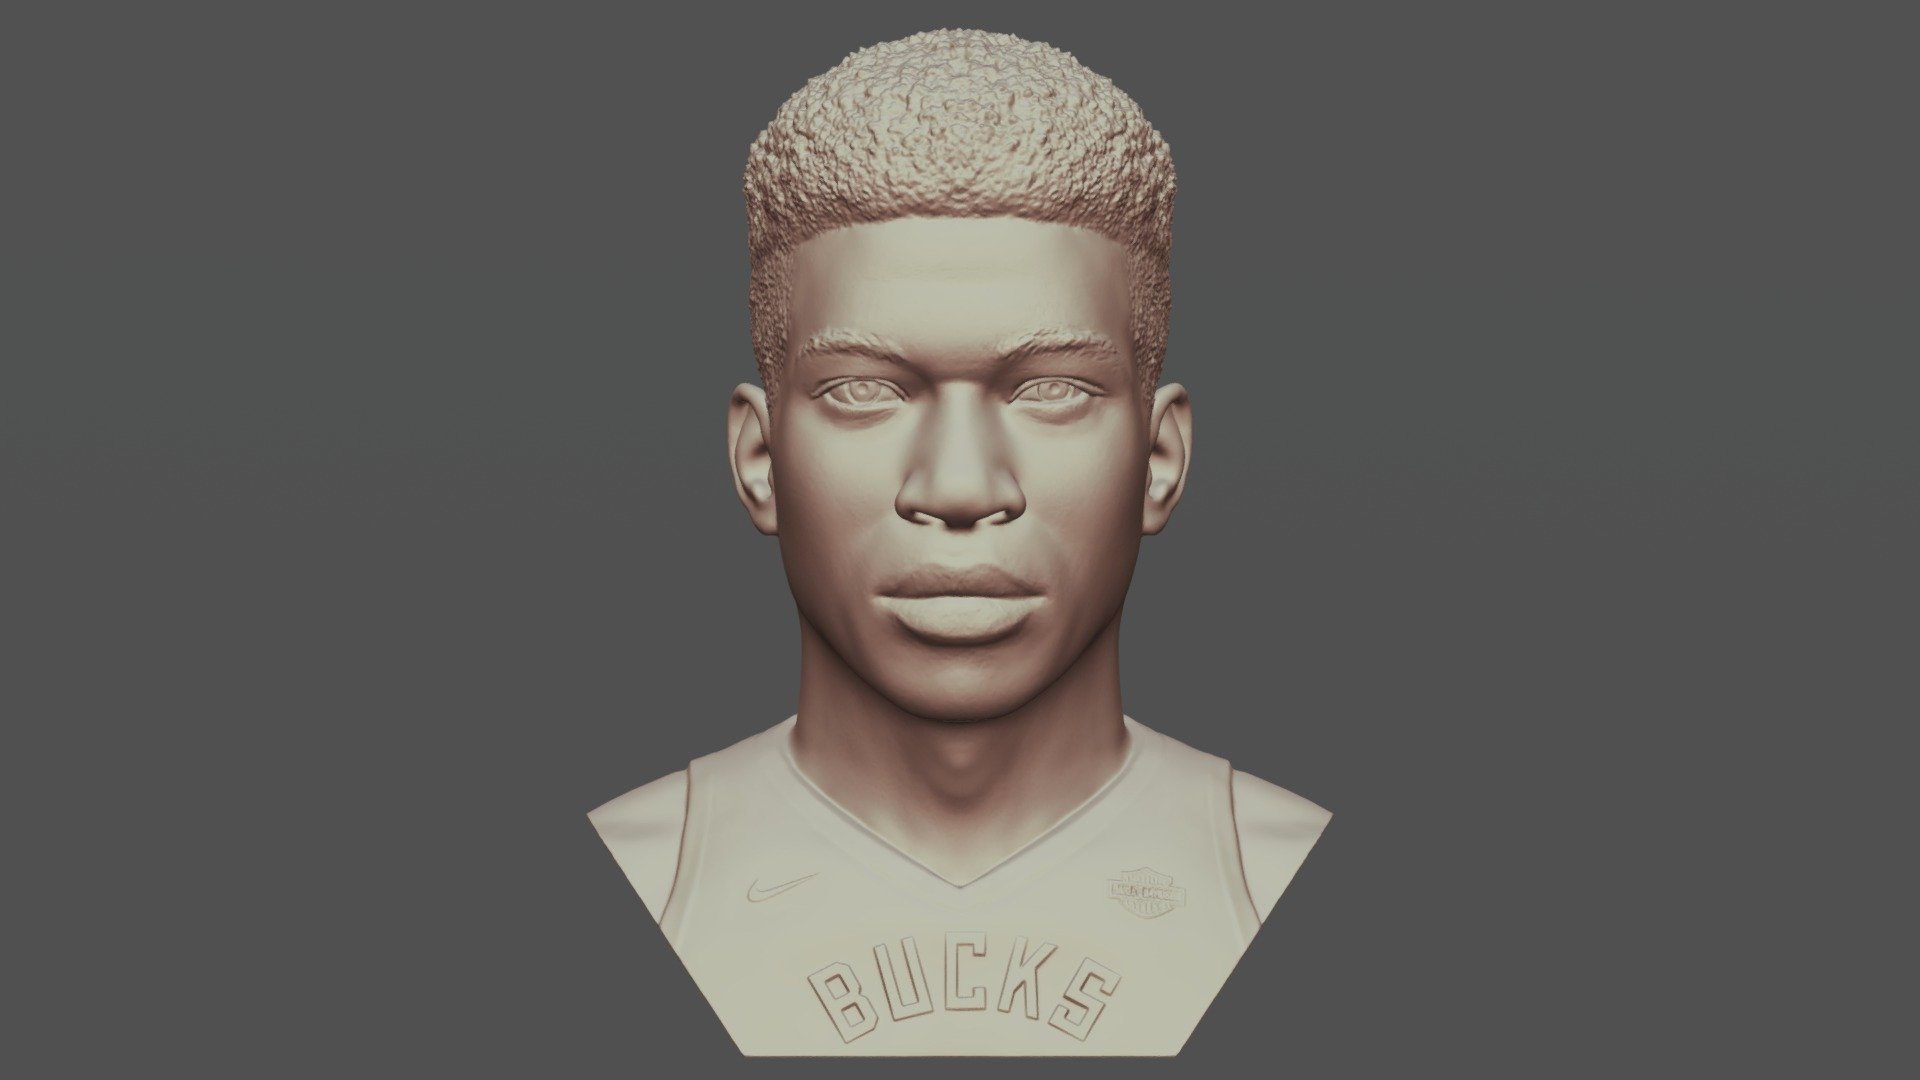 Giannis Antetokounmpo bust 3D printing - Buy Royalty Free ...